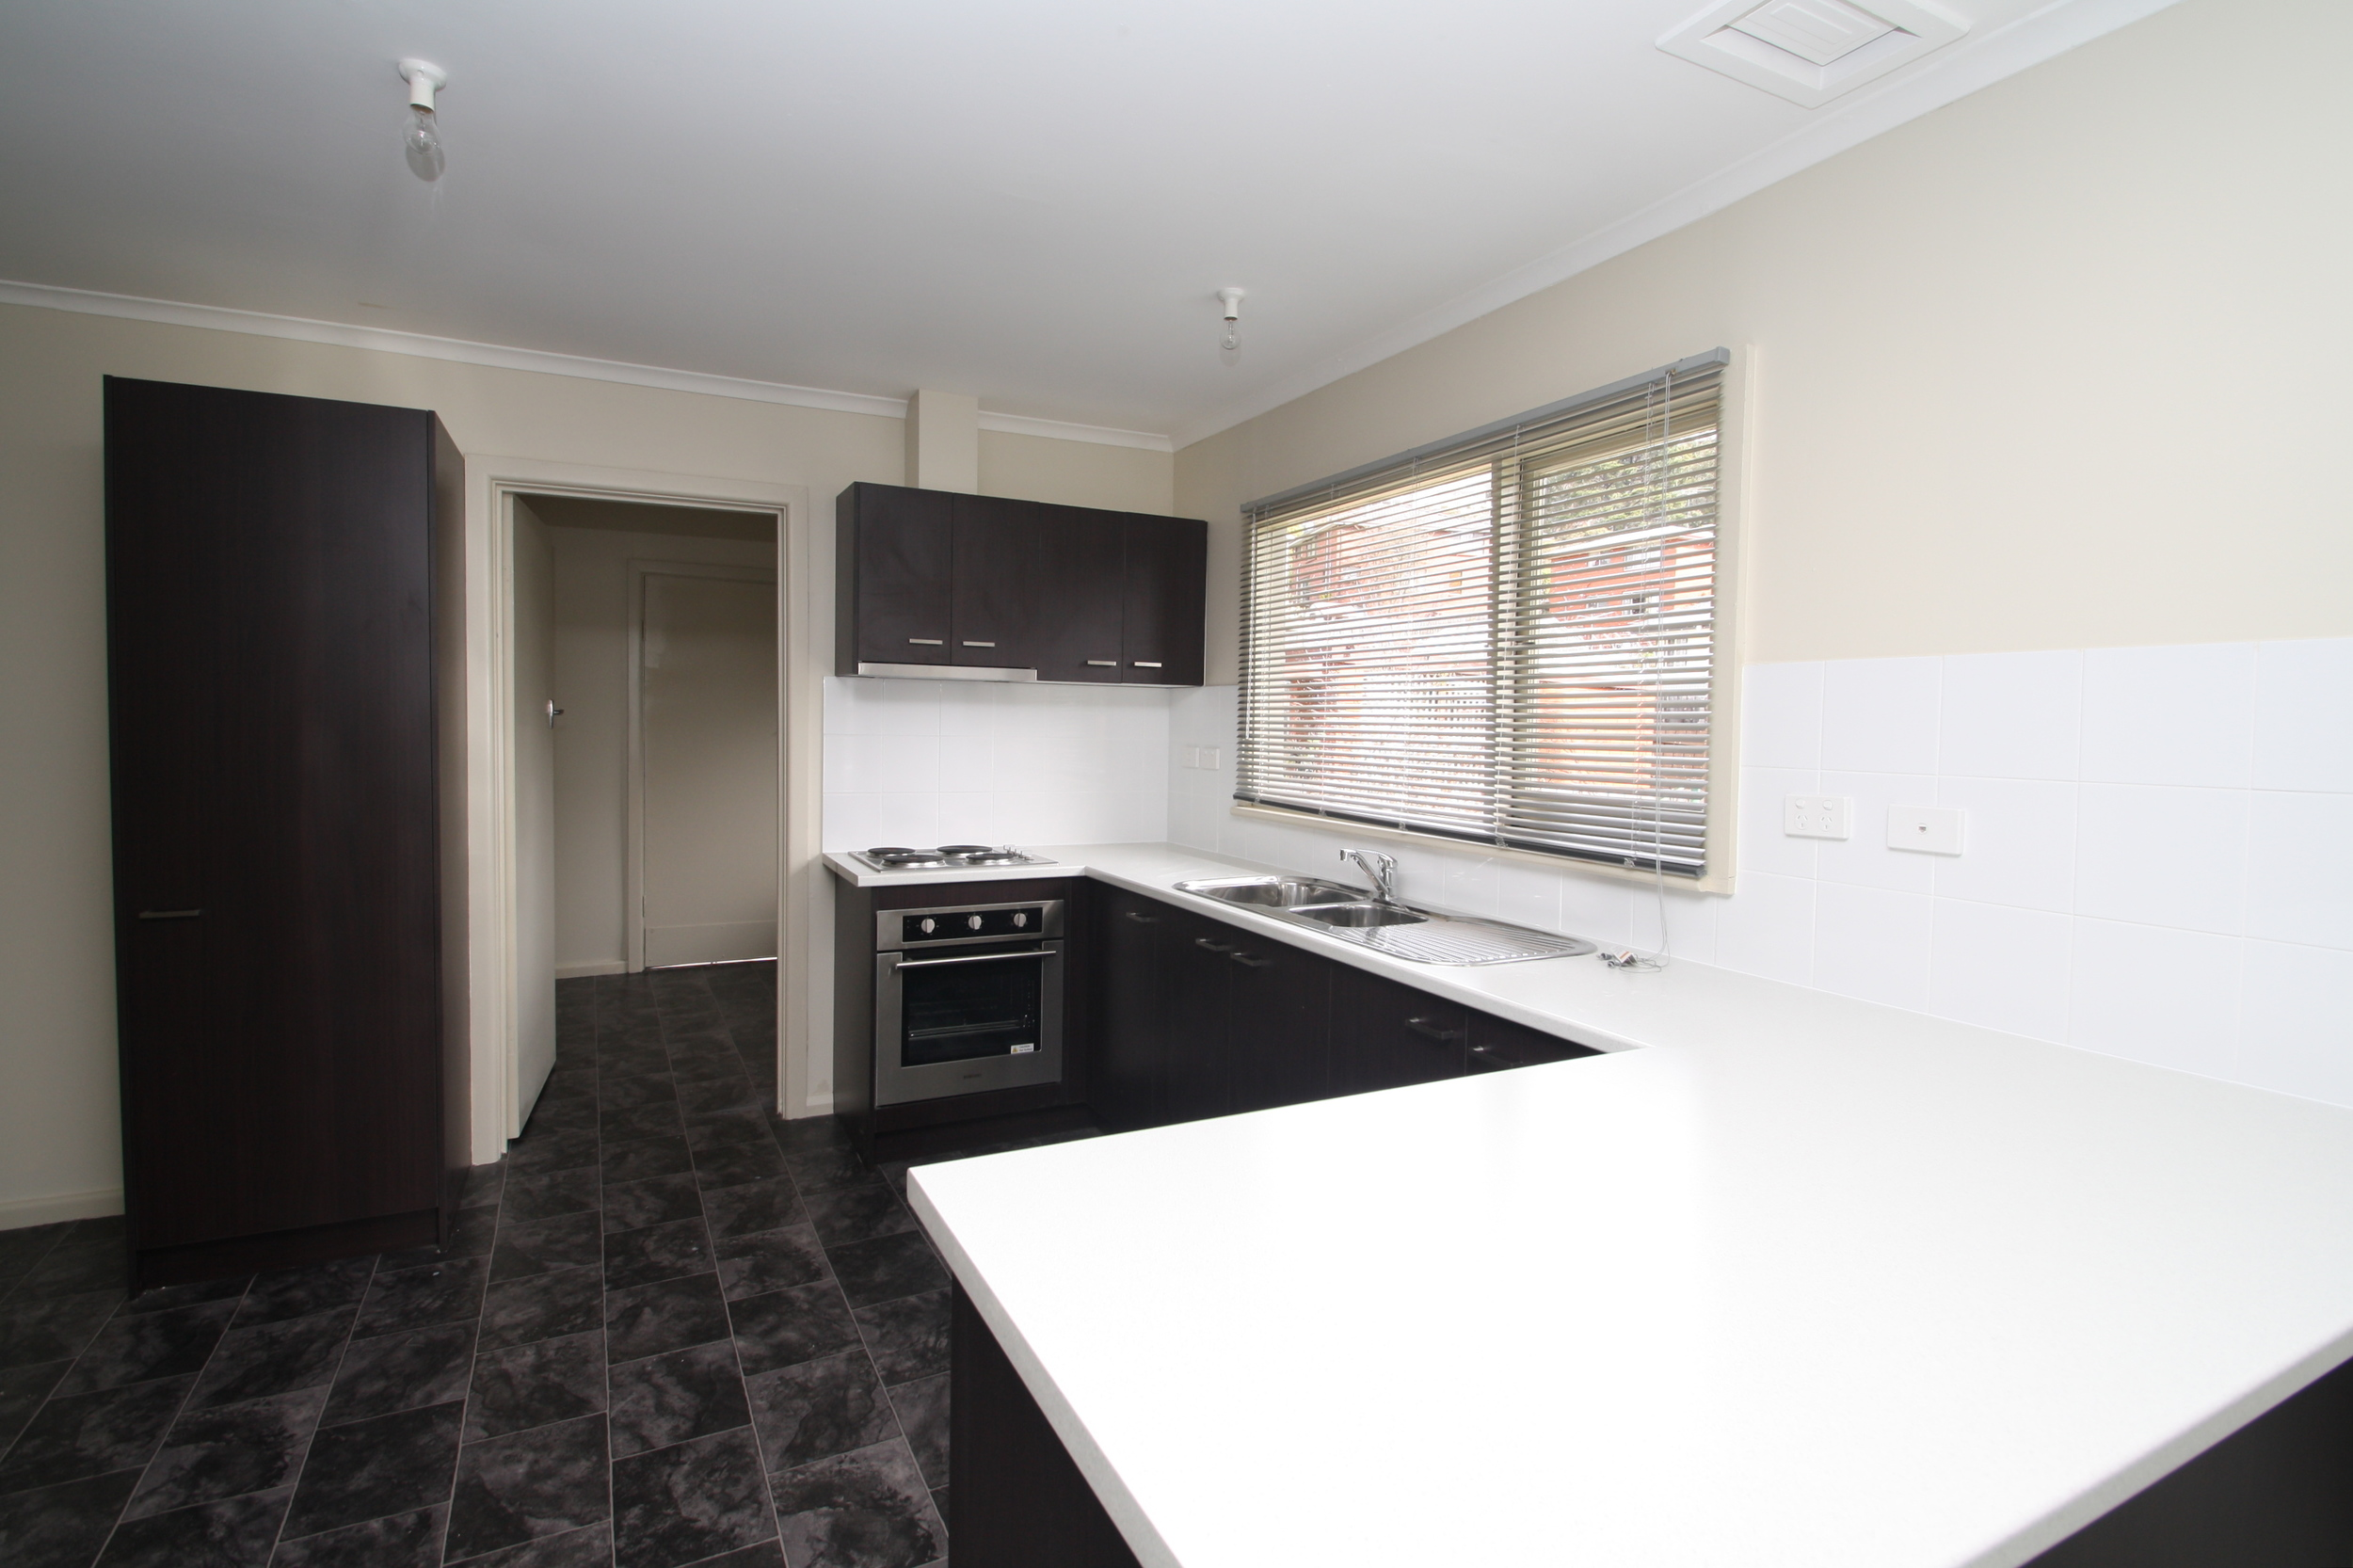 A brand new kitchen - part of the complete refurbishment.